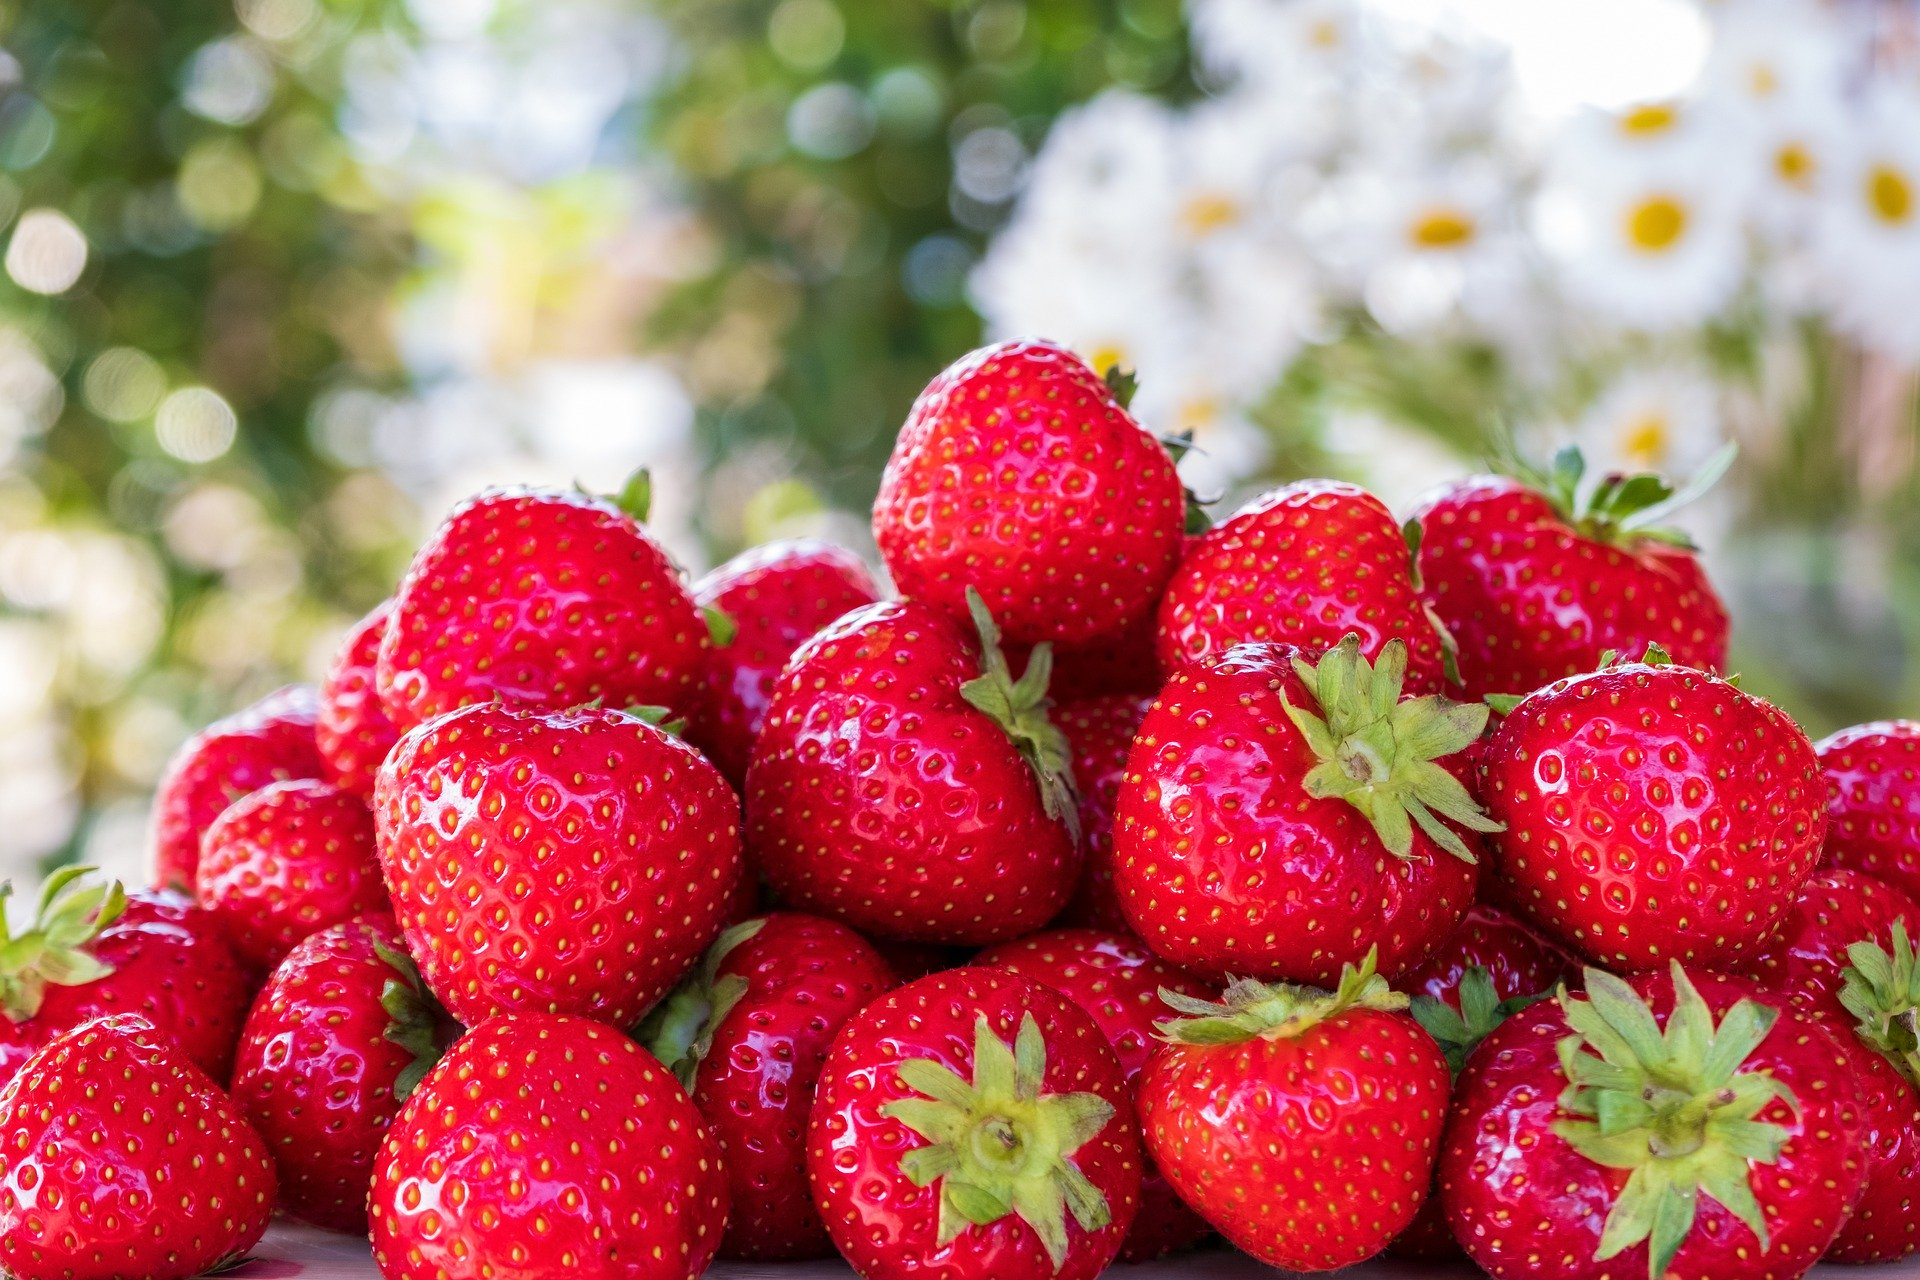 Strawberries are an excellent source of vitamin C which aids digestion.